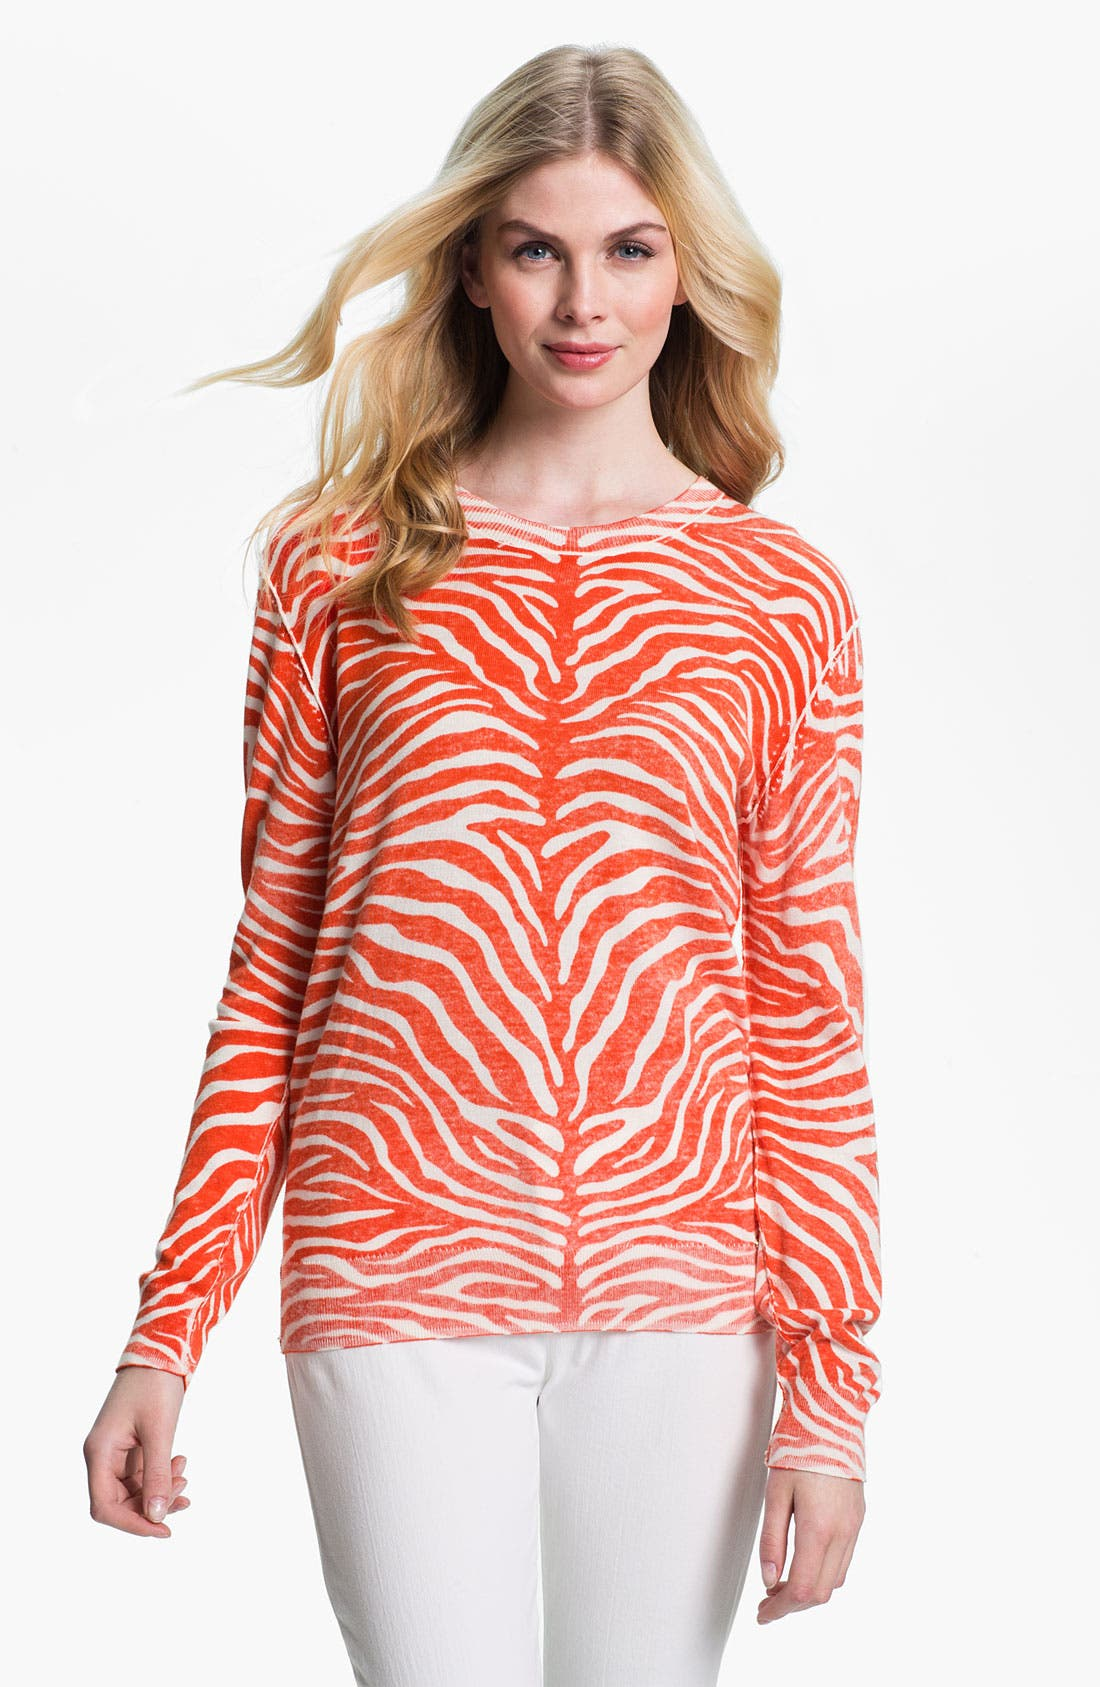 Alternate Image 1 Selected - MICHAEL Michael Kors Zebra Print Sweater